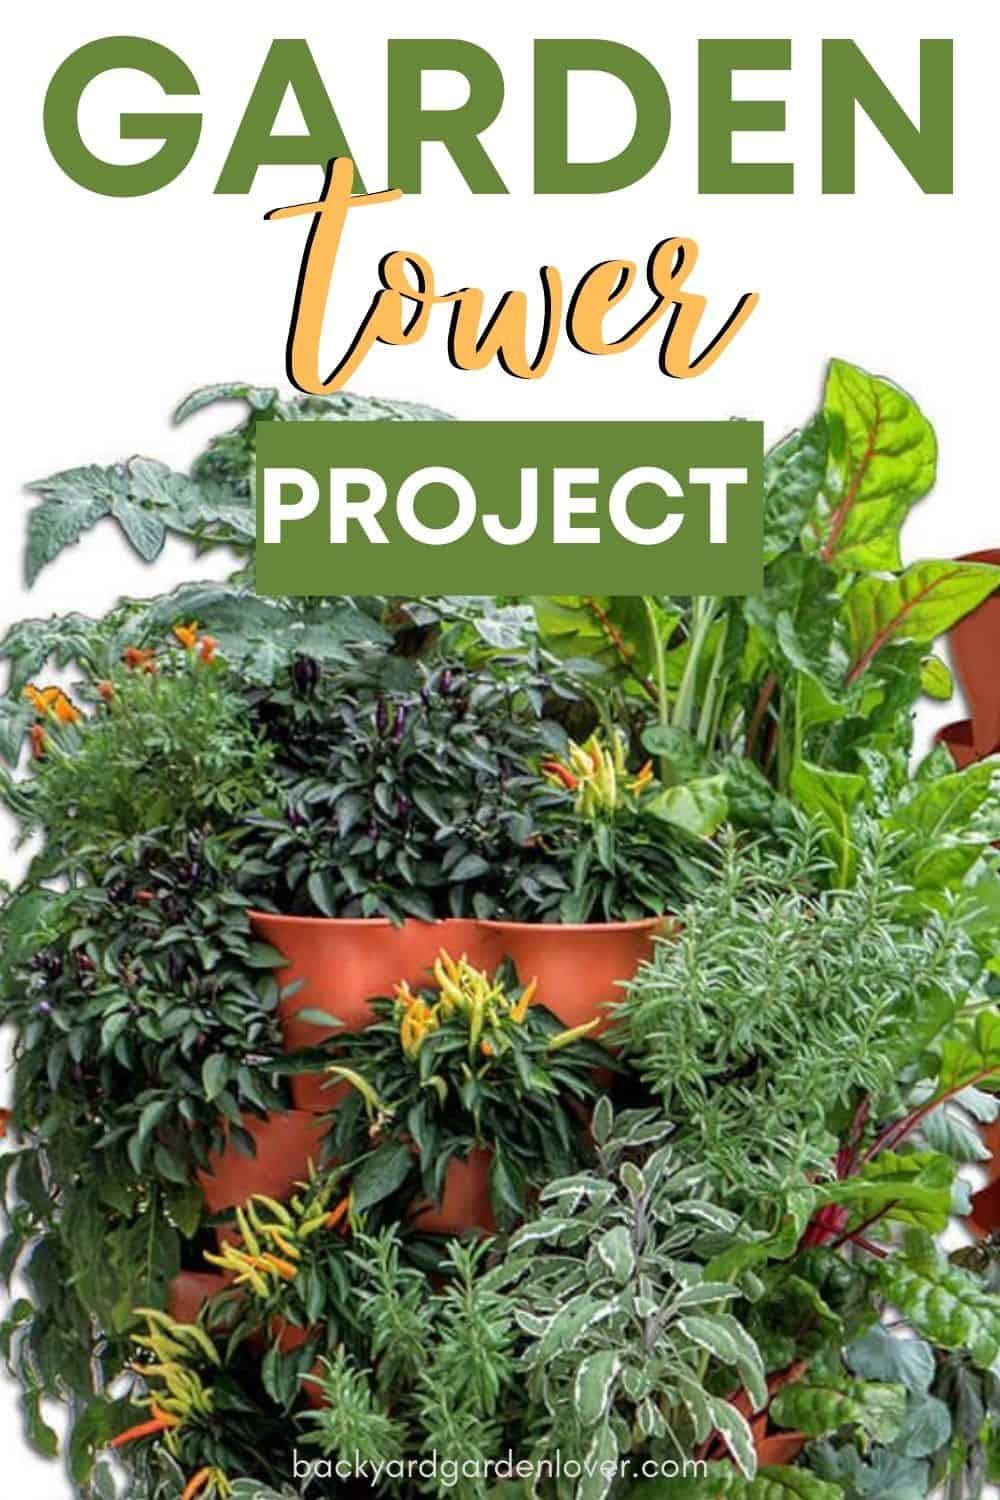 Garden tower project - Pinterest image